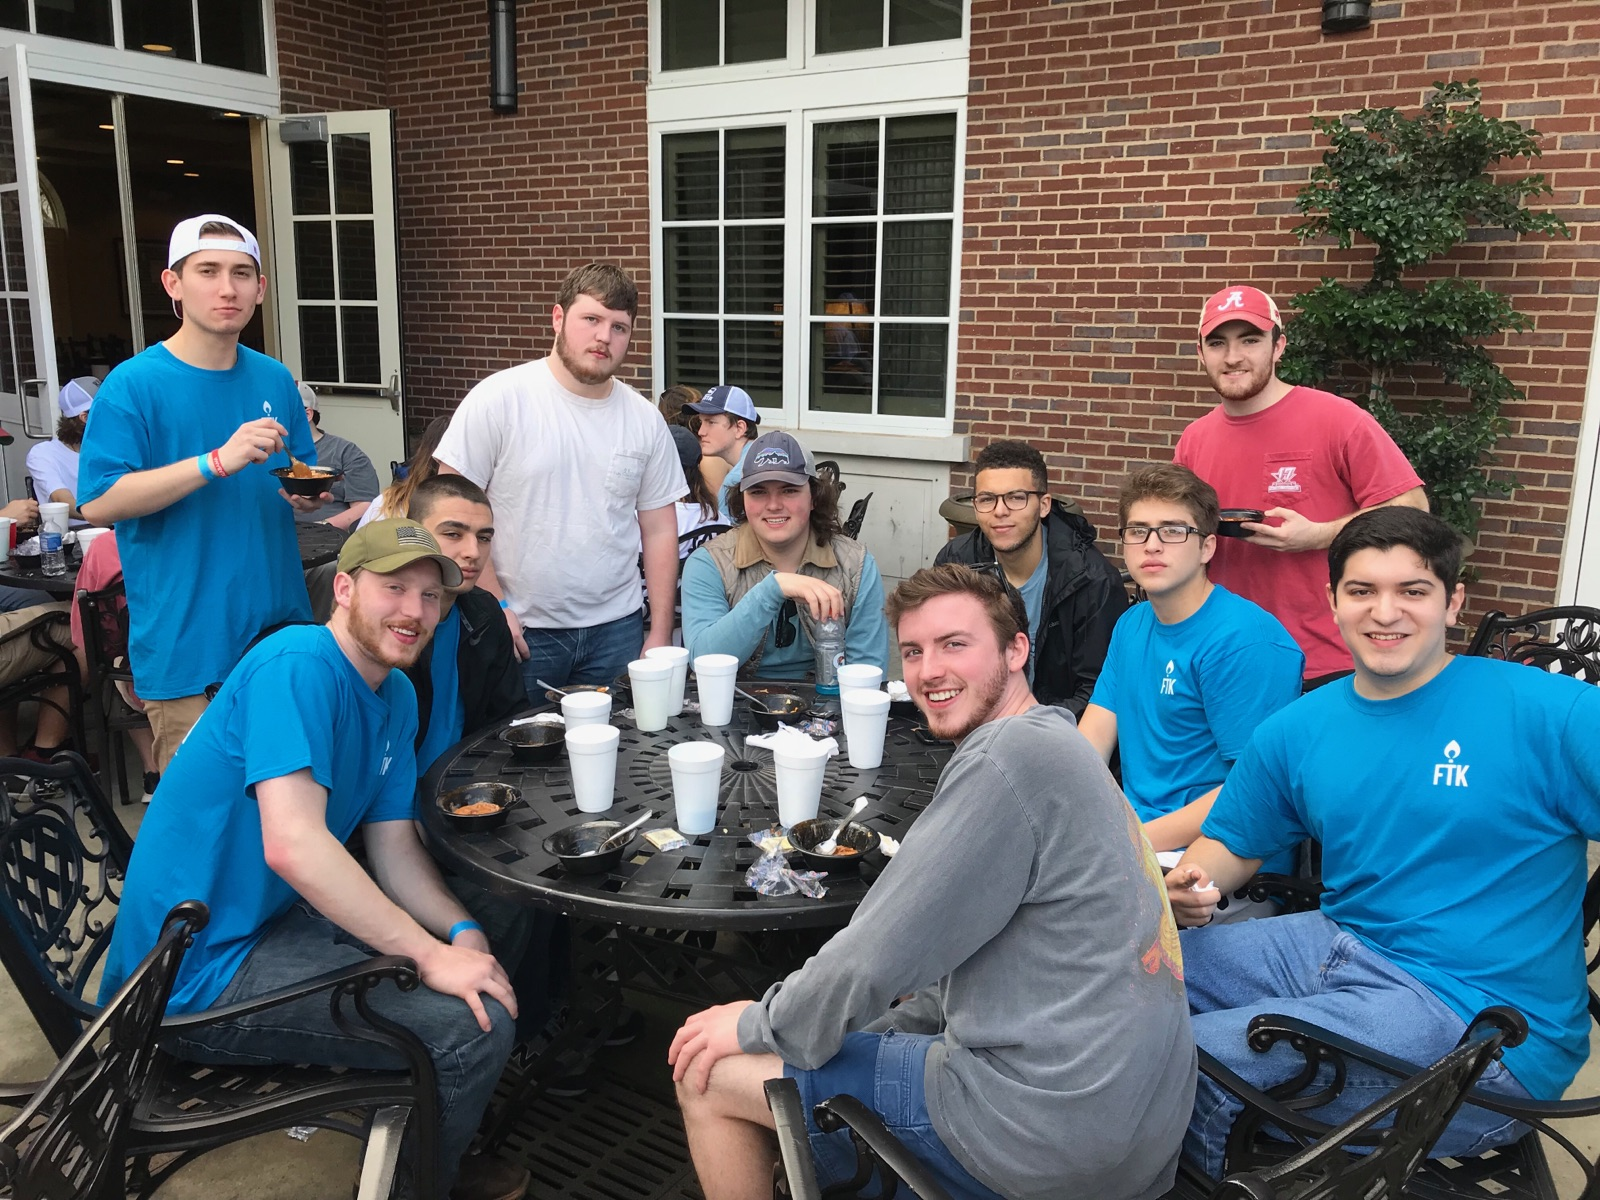 Brothers attending The annual ifc chilifest. we are proud to be co-sponsors of this event and be a part of the initiative to raise money for the  women and gender resource center  here on campus